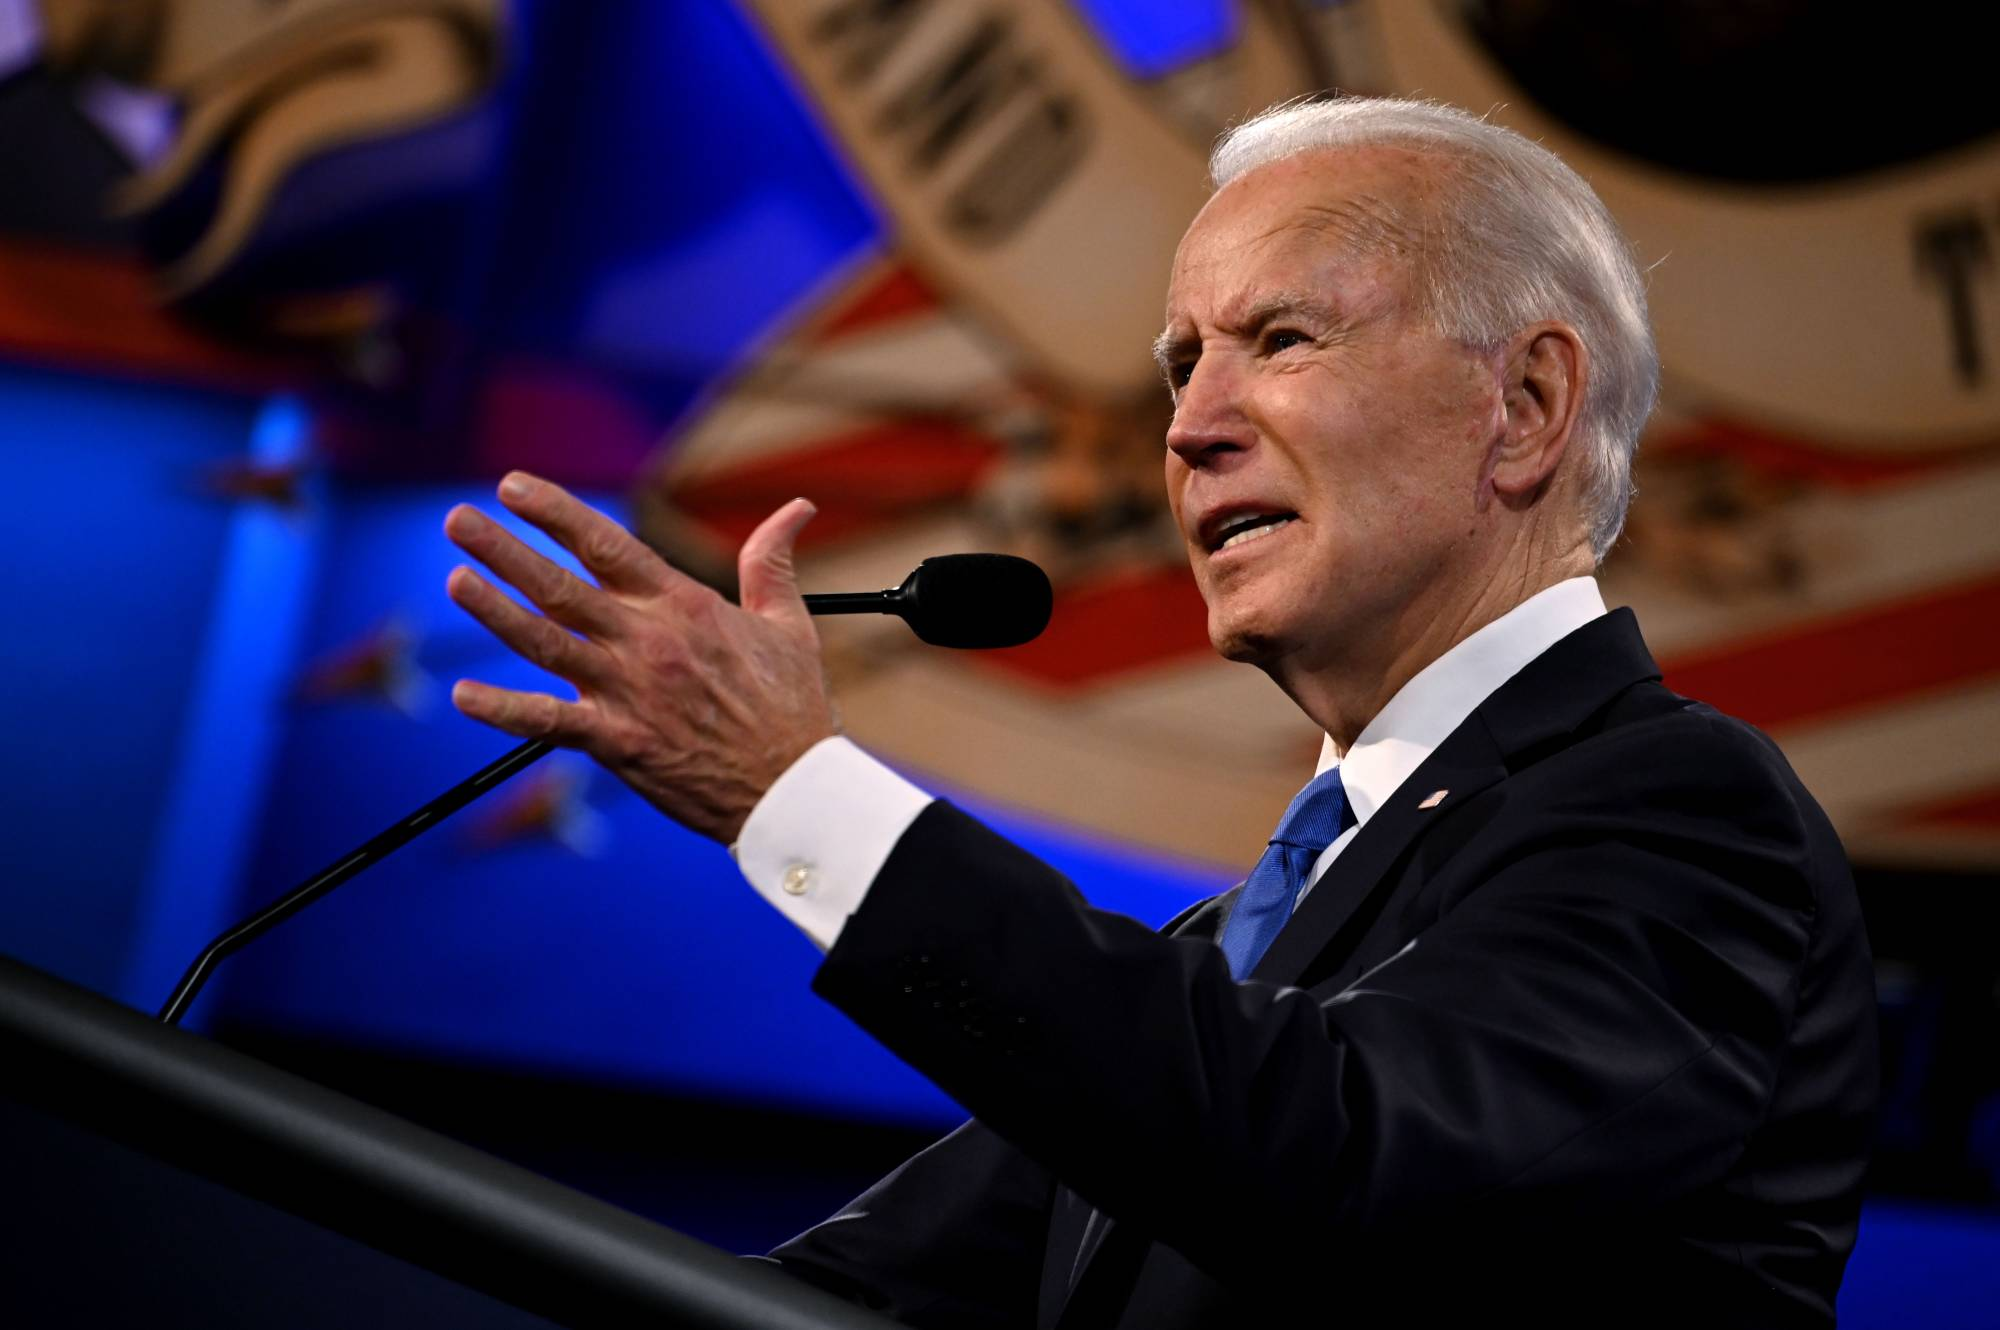 Democratic Presidential candidate and former U.S. Vice President Joe Biden speaks during the final presidential debate at Belmont University in Nashville, Tennessee, on Thursday. | AFP-JIJI